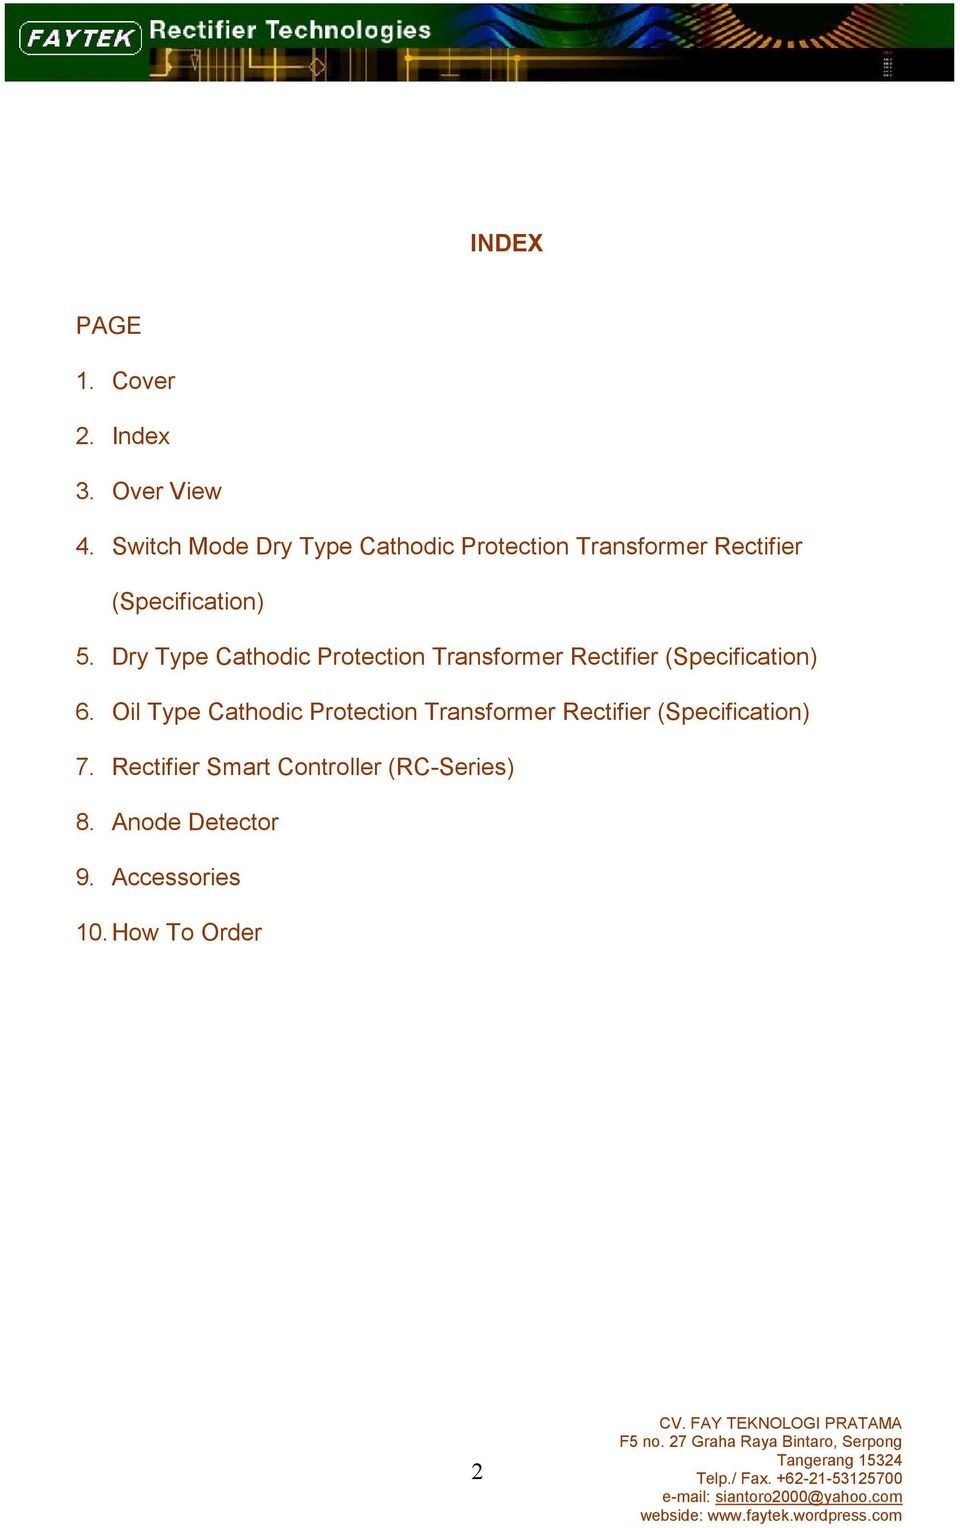 Dry Type Cathodic Protection Transformer Rectifier (Specification) 6.